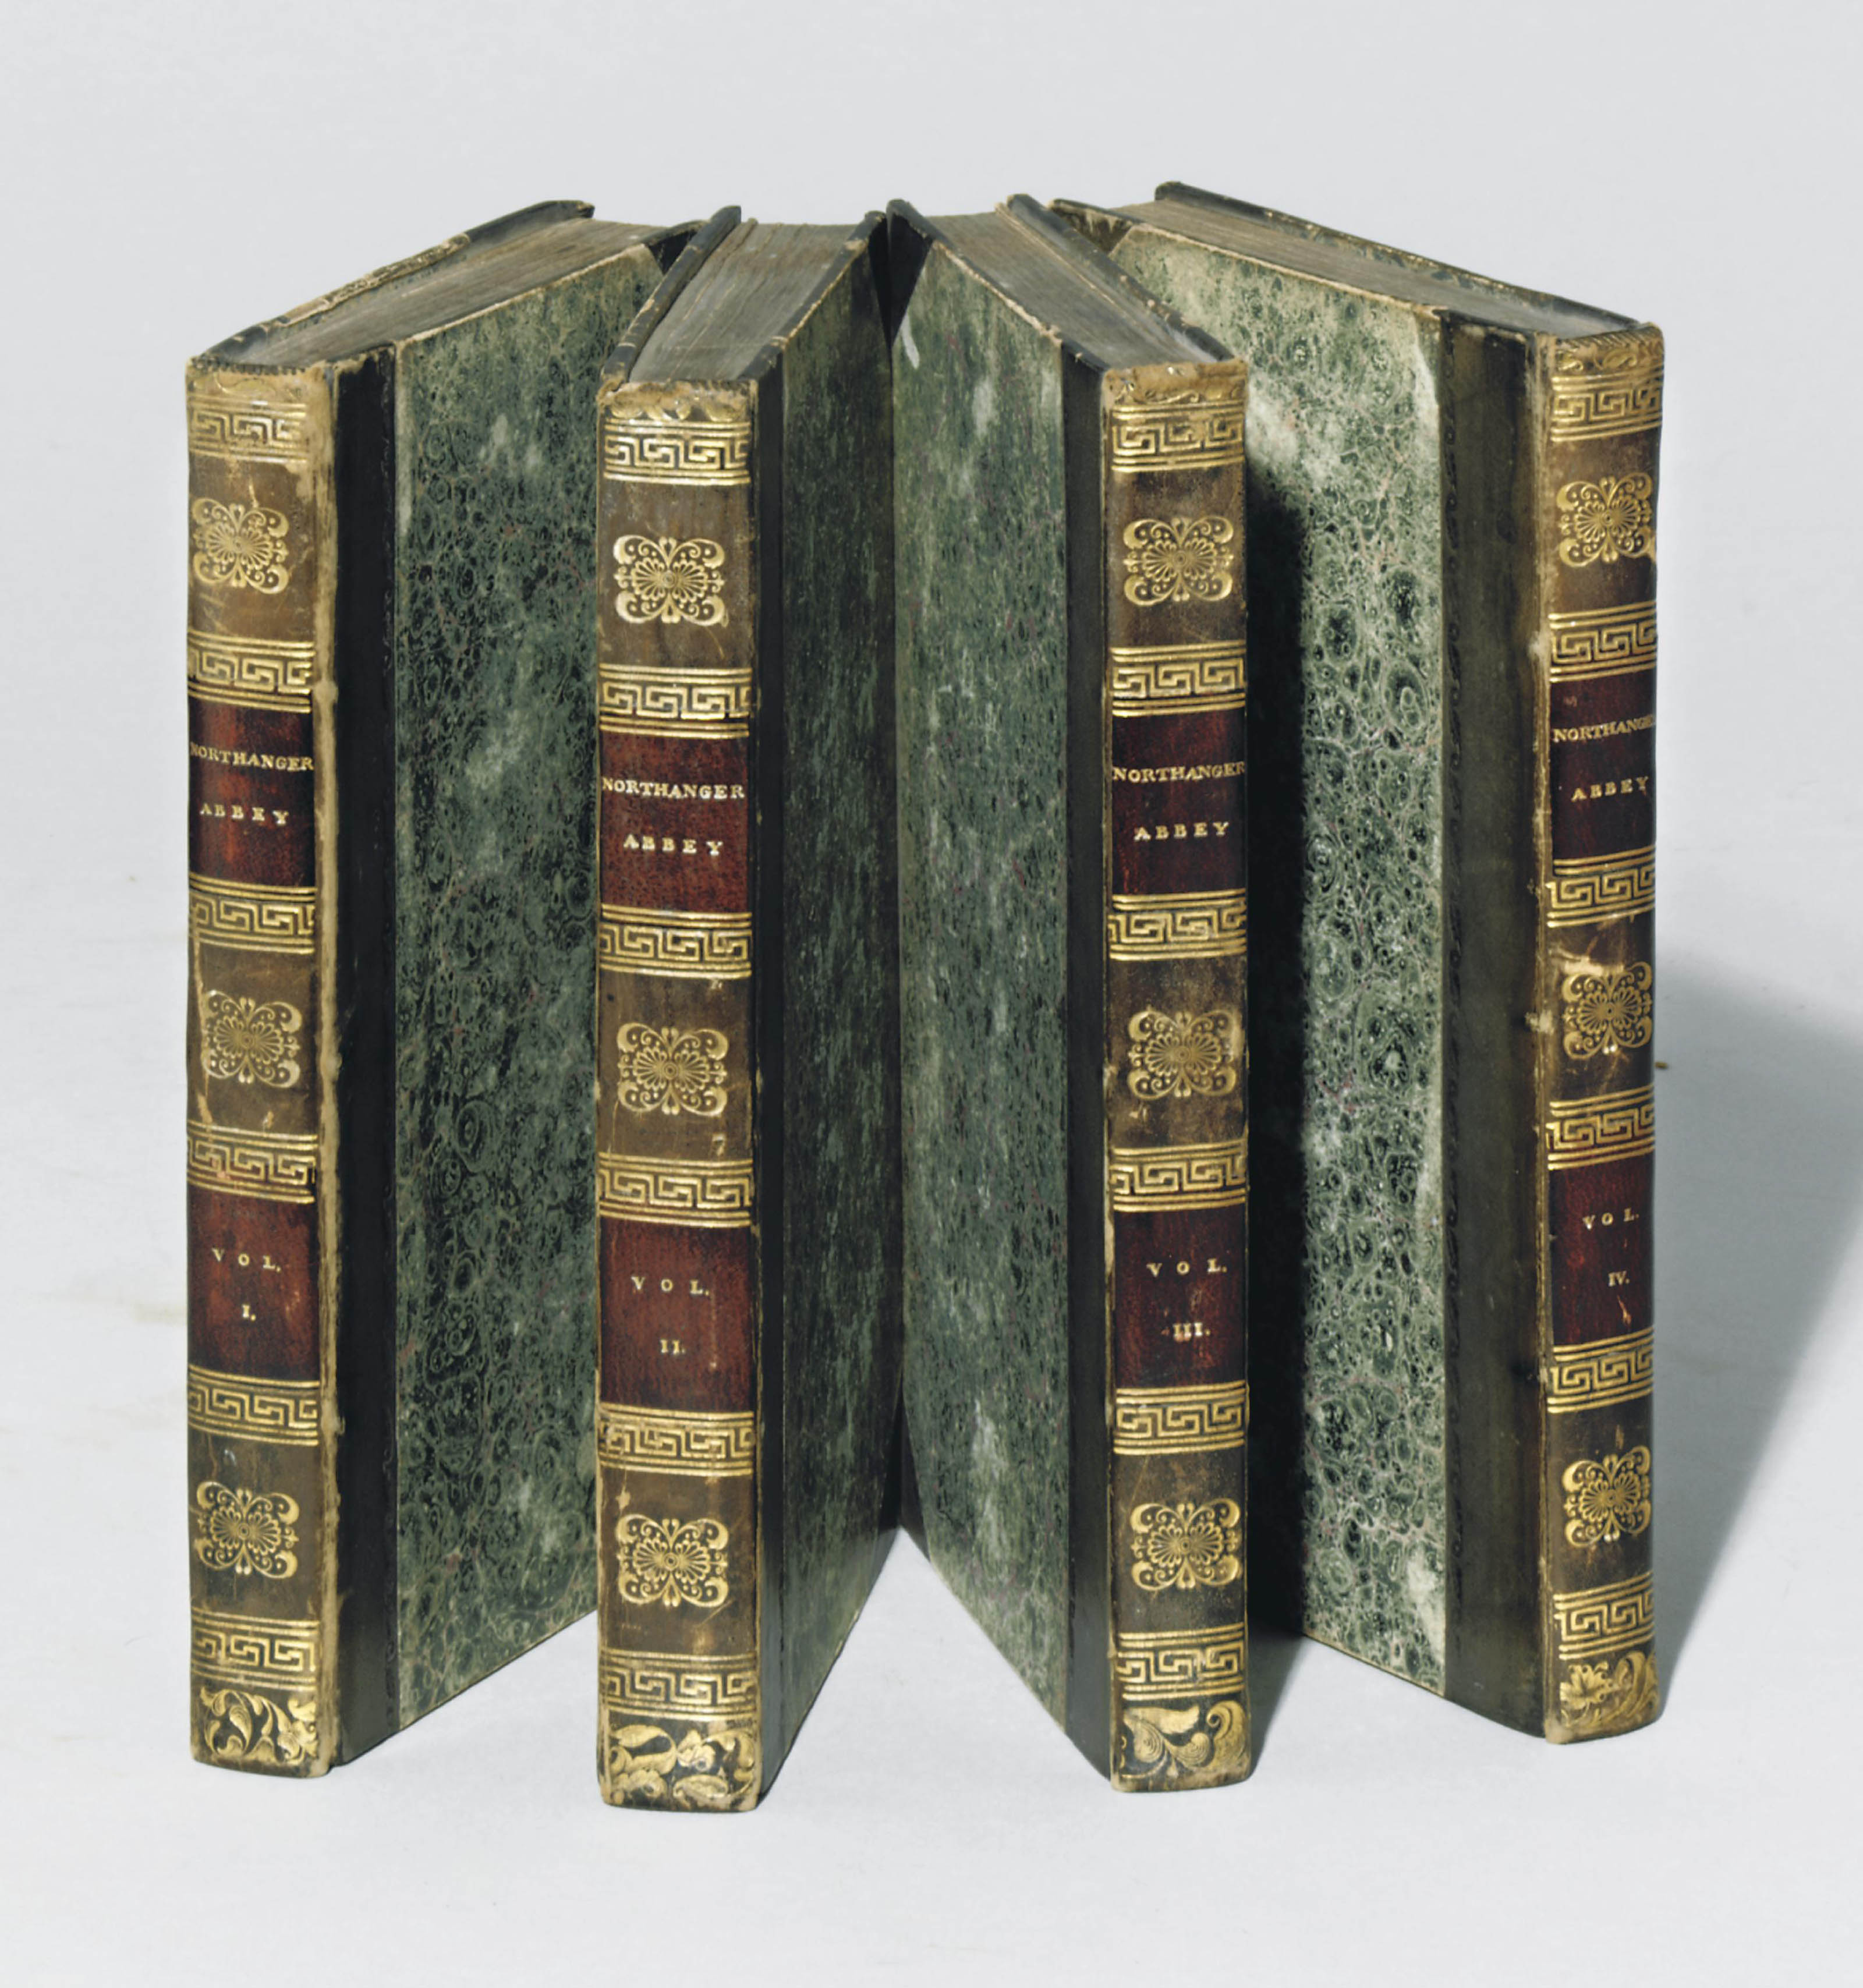 [AUSTEN, Jane (1775-1817).] Northanger Abbey: and Persuasion. With a Biographical Notice of the Author [by Henry Austen]. London: C. Rowarth [vols I-II], and T. Davison [vols III- IV] for John Murray, 1818 [but ca. 20 December 1817].